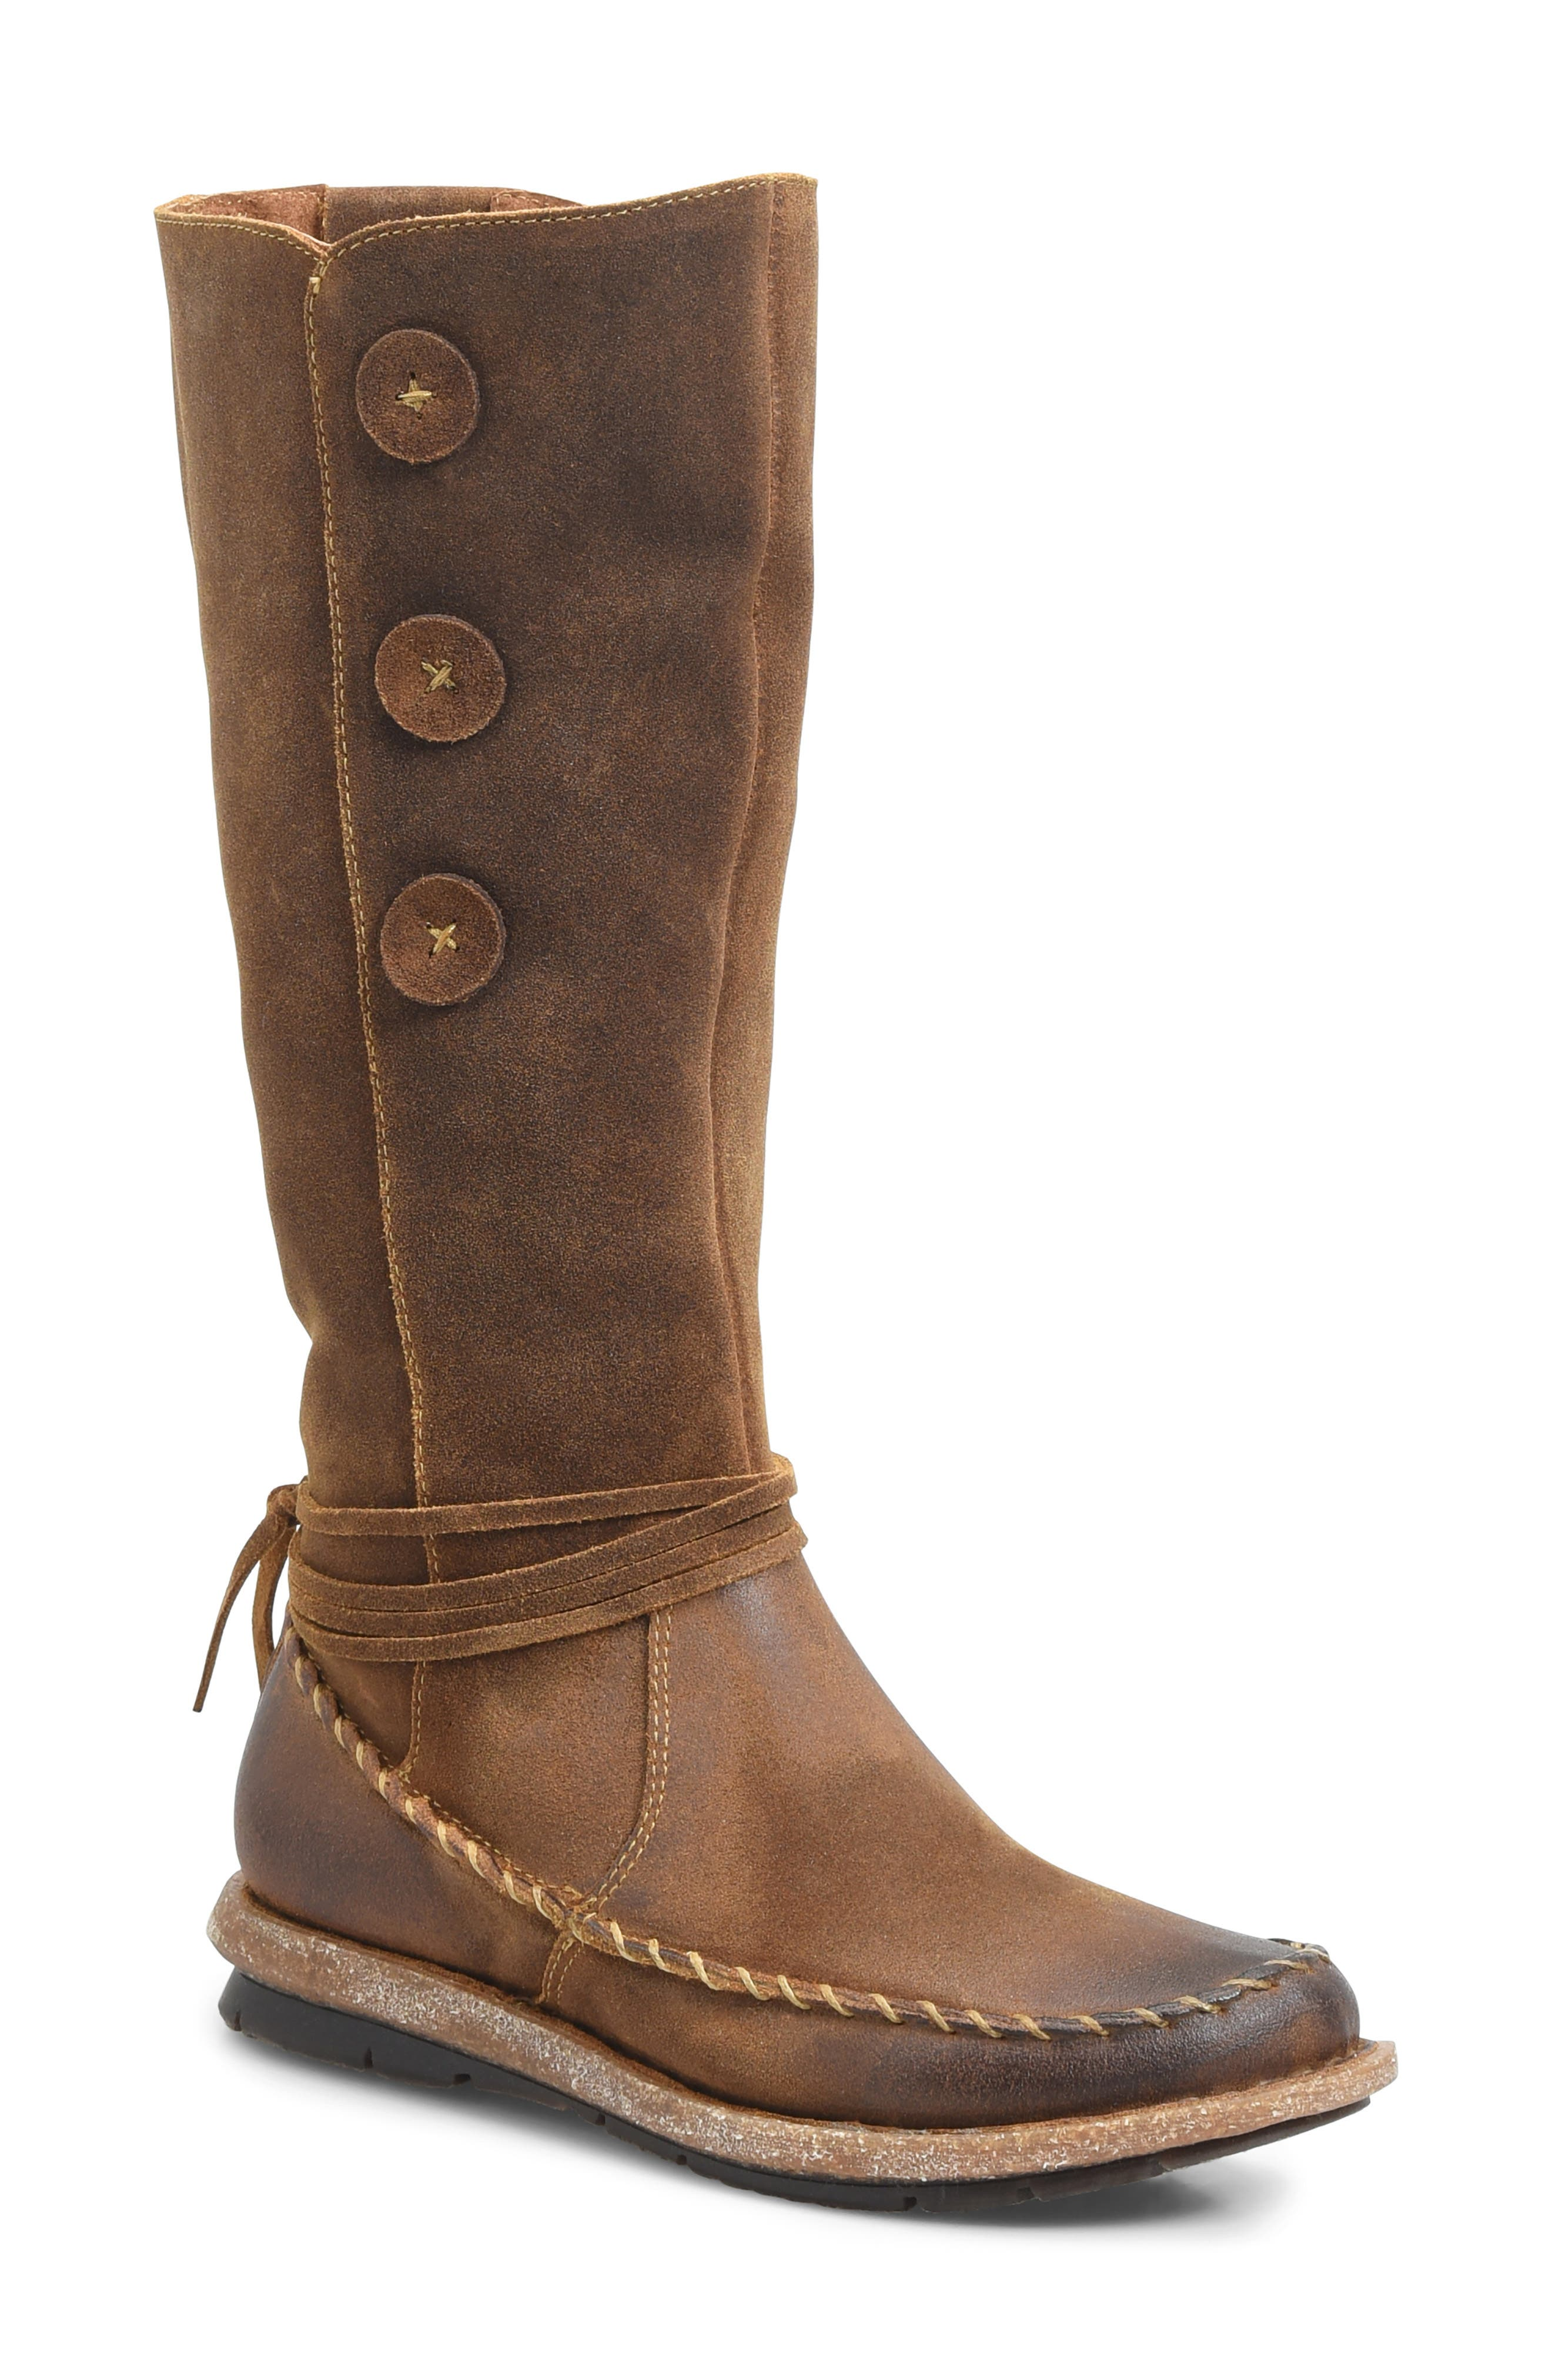 Torrey Boot,                         Main,                         color, RUST DISTRESSED LEATHER